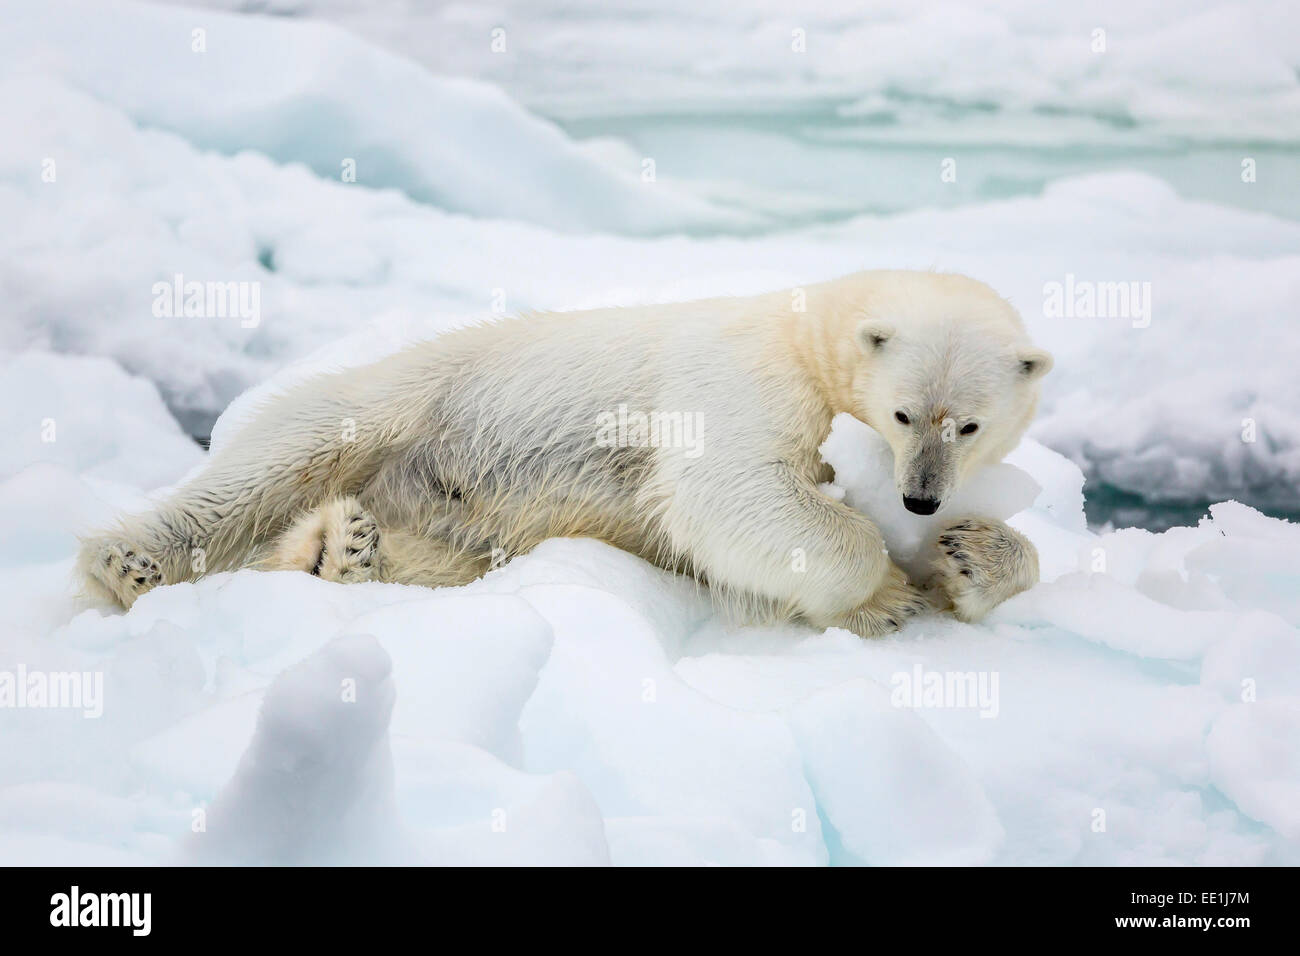 Adult polar bear (Ursus maritimus) stretching on first year sea ice in Olga Strait, near Edgeoya, Svalbard, Arctic, Stock Photo